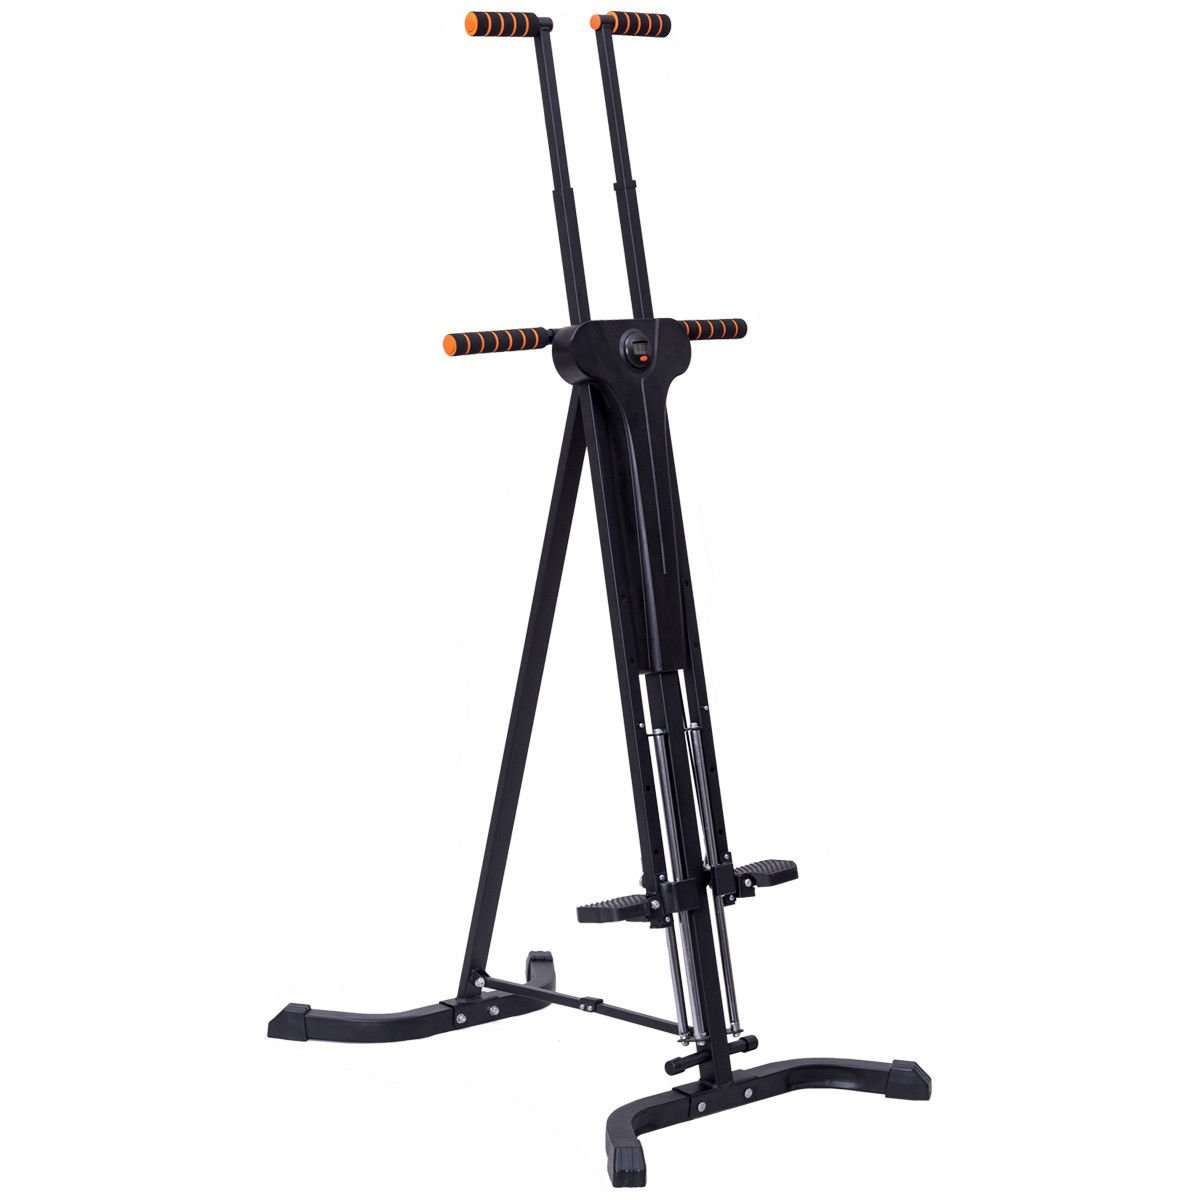 Goplus Vertical Climber Folding Stepper Adjustable Height with LED Display Climbing Fitness Workout Machine Home Gym